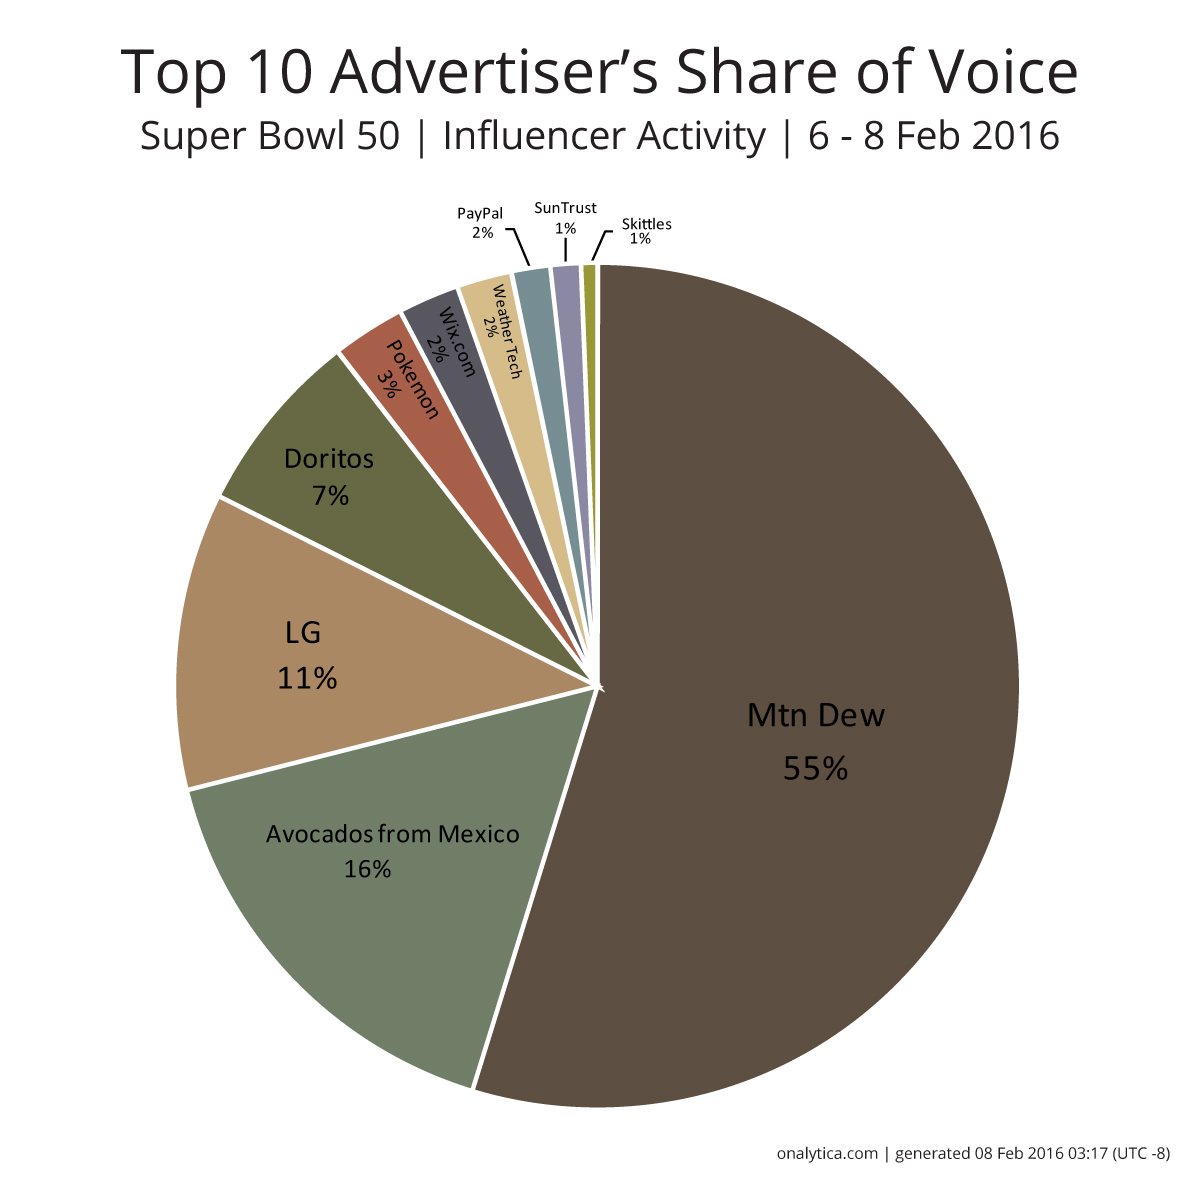 Onalytica - The Super Bowl Top 10 Advertisers Share of Voice